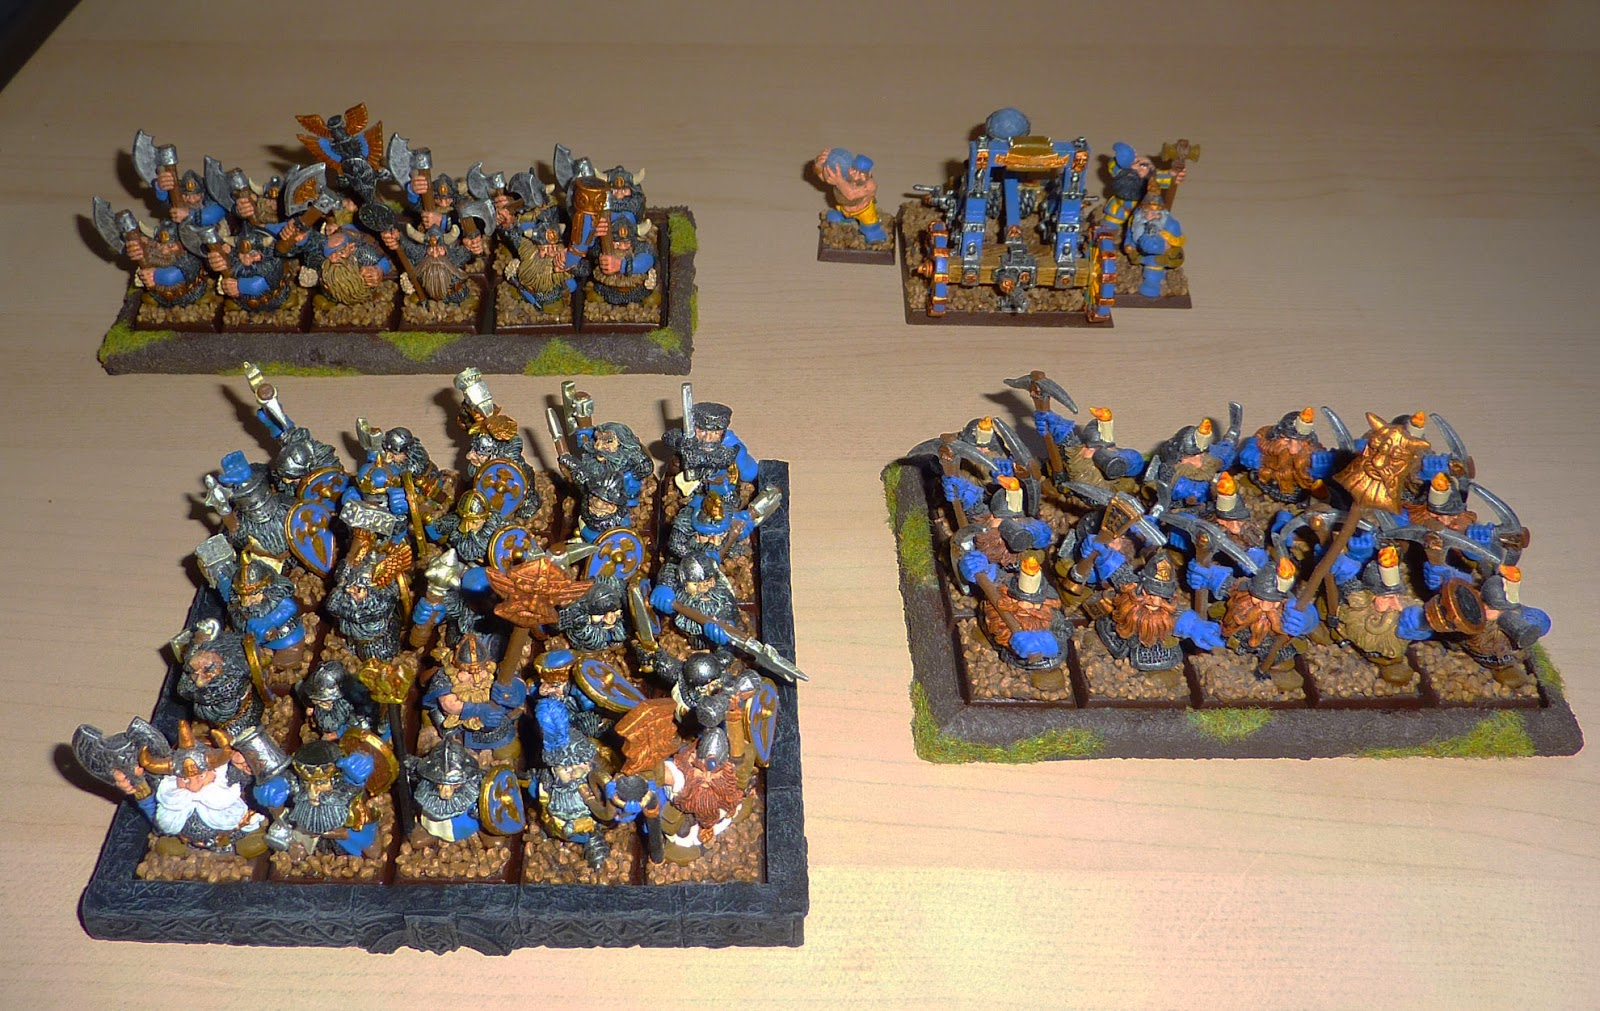 A Warhammer Fantasy Battle Report between Dwarfs and High Elves.